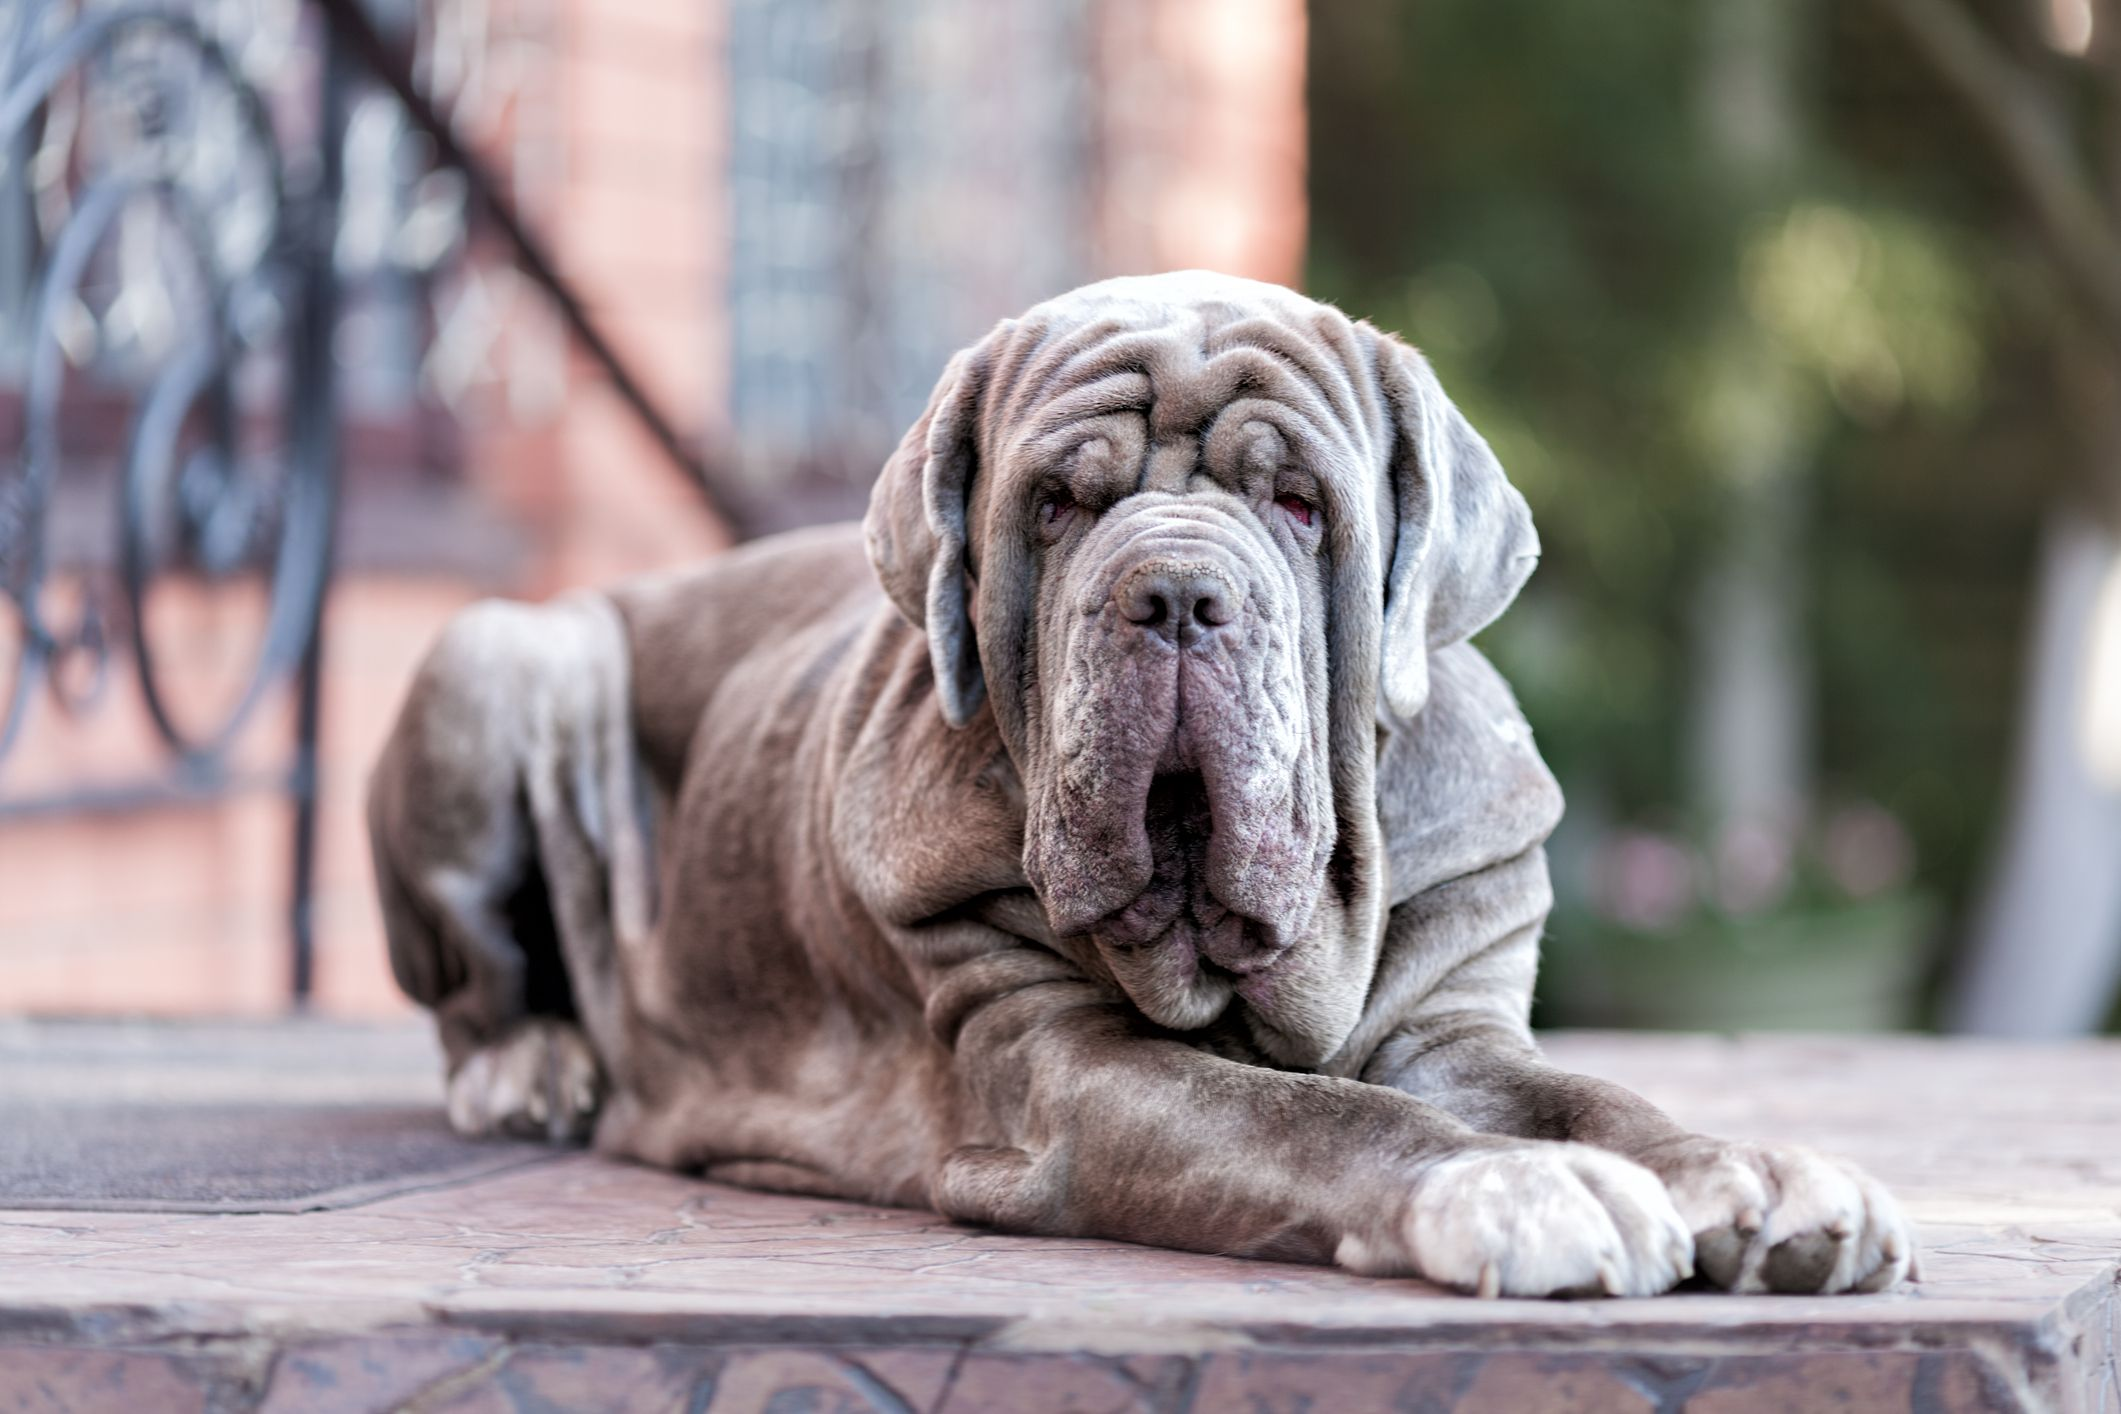 13 Italian Dog Breeds That Are Pure Beauty